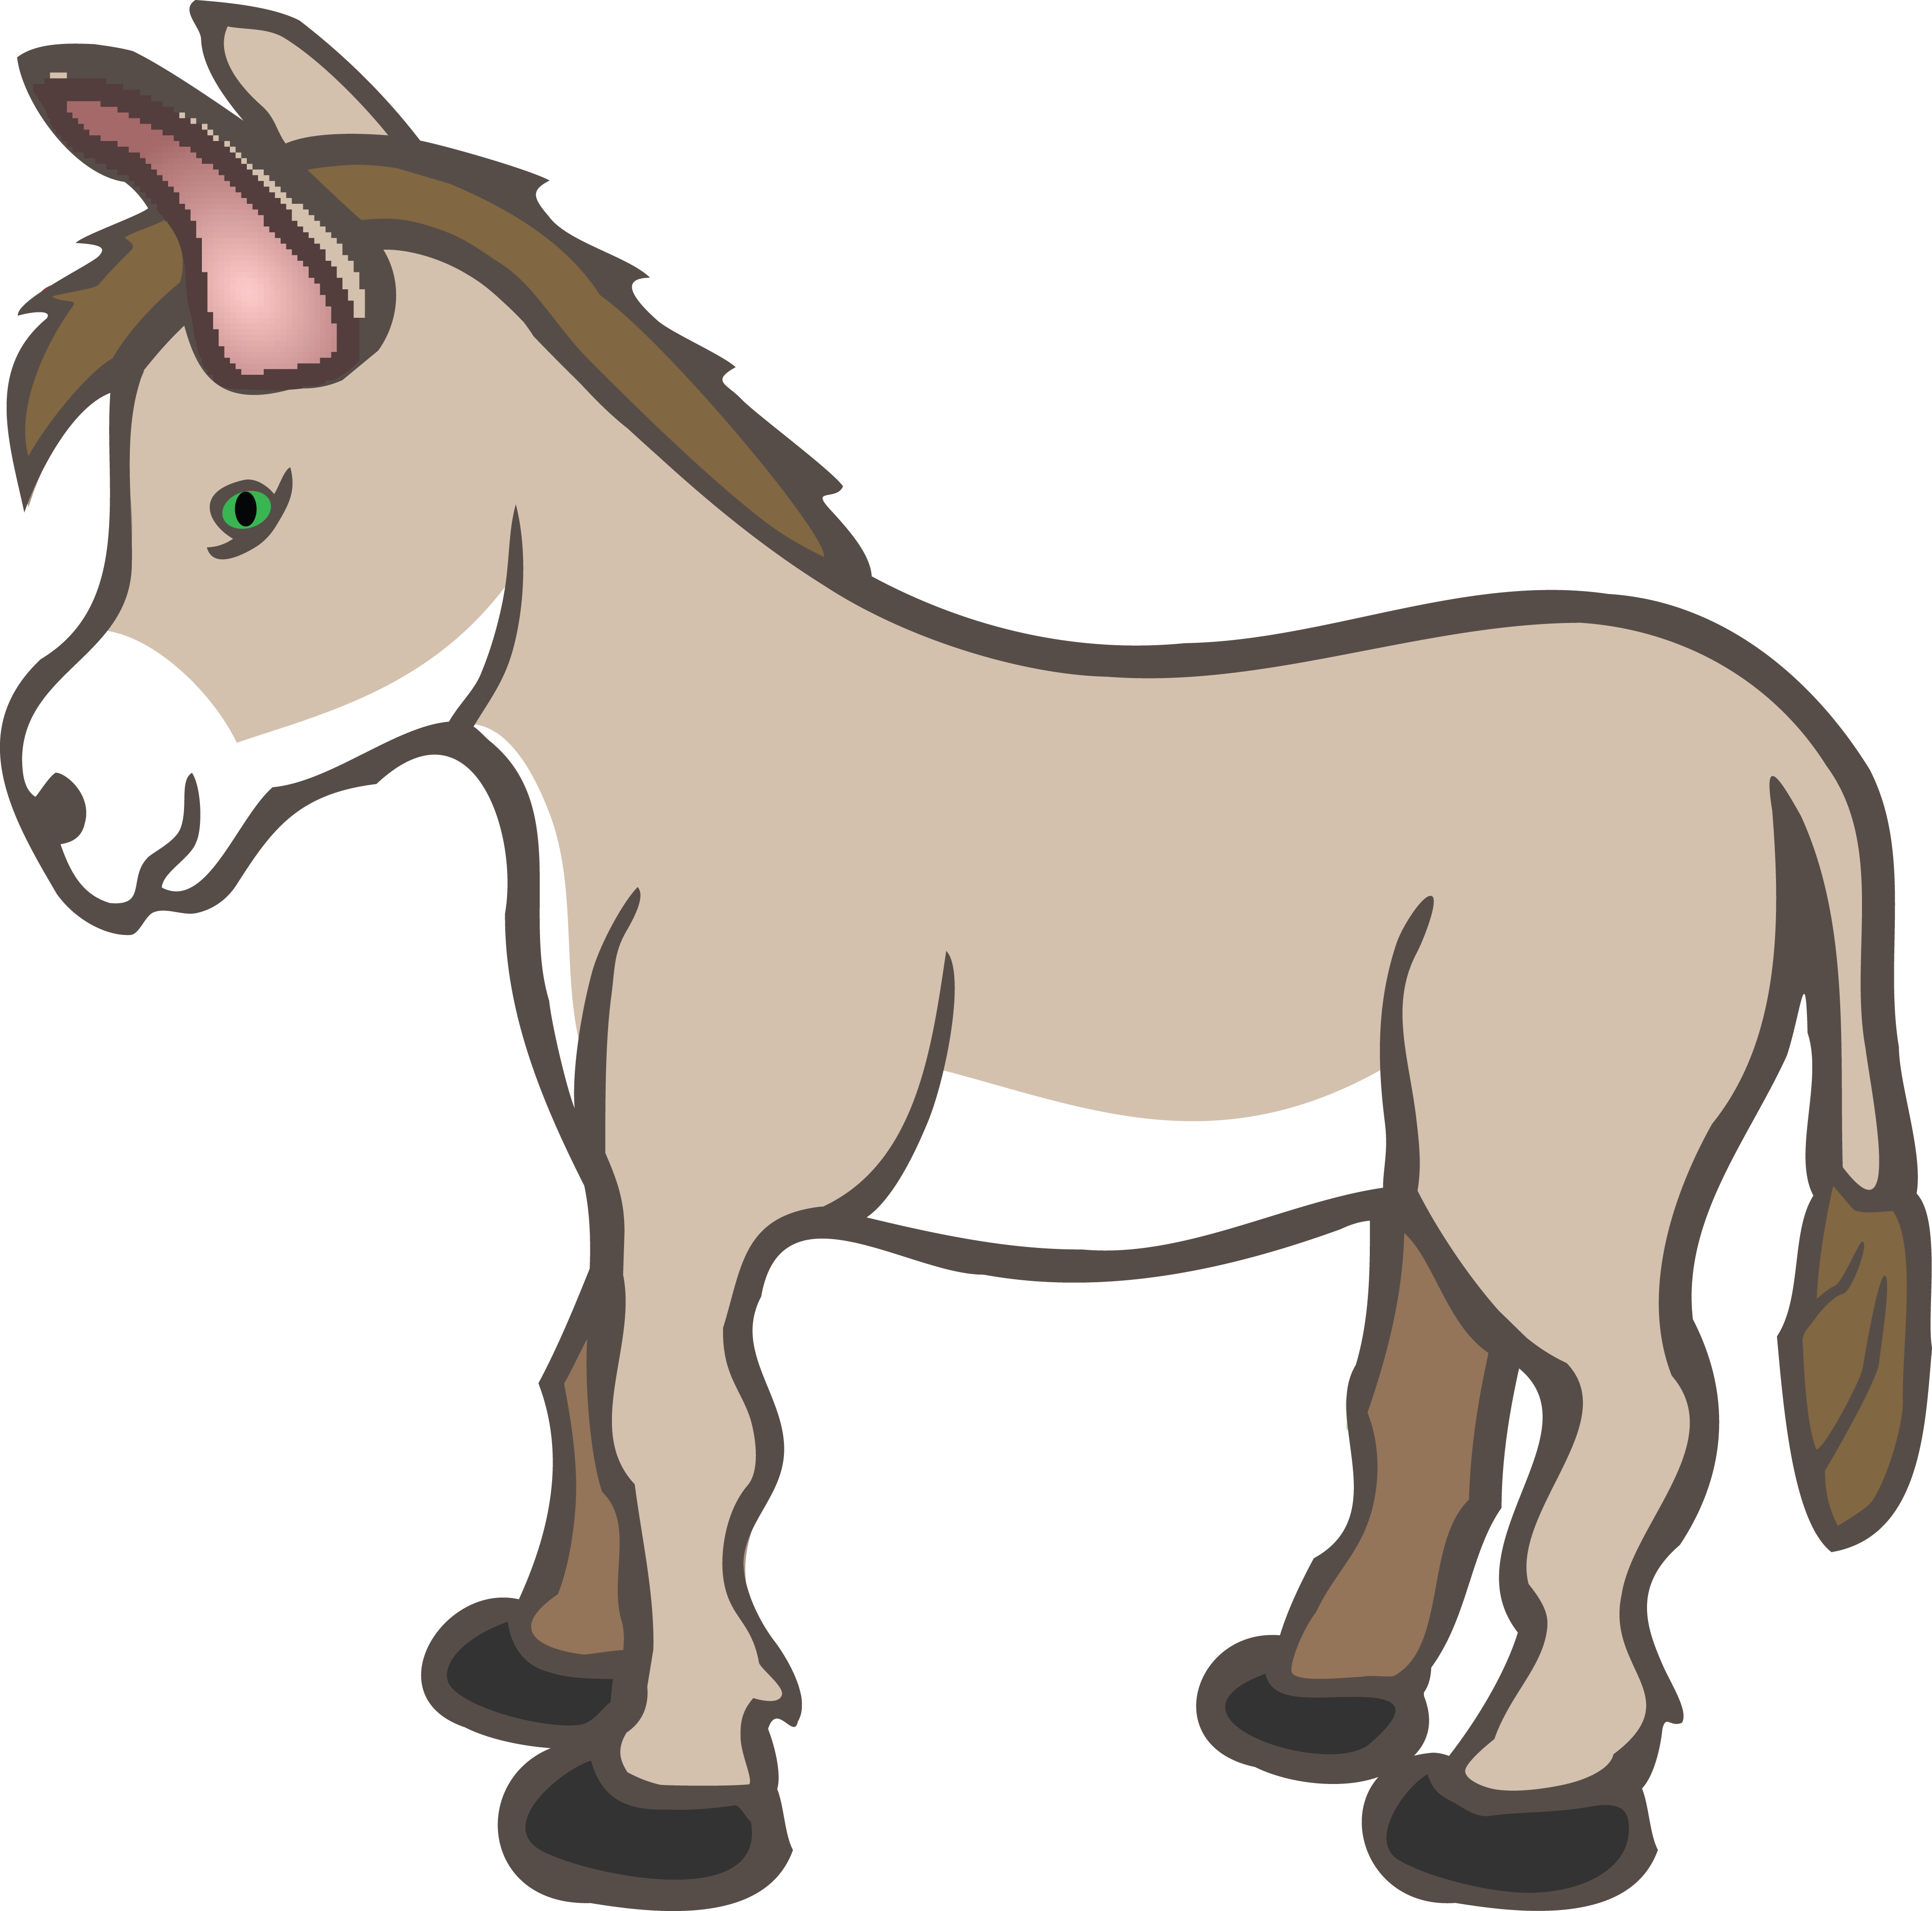 clipart donkey 1559 free clipart of a donkey.